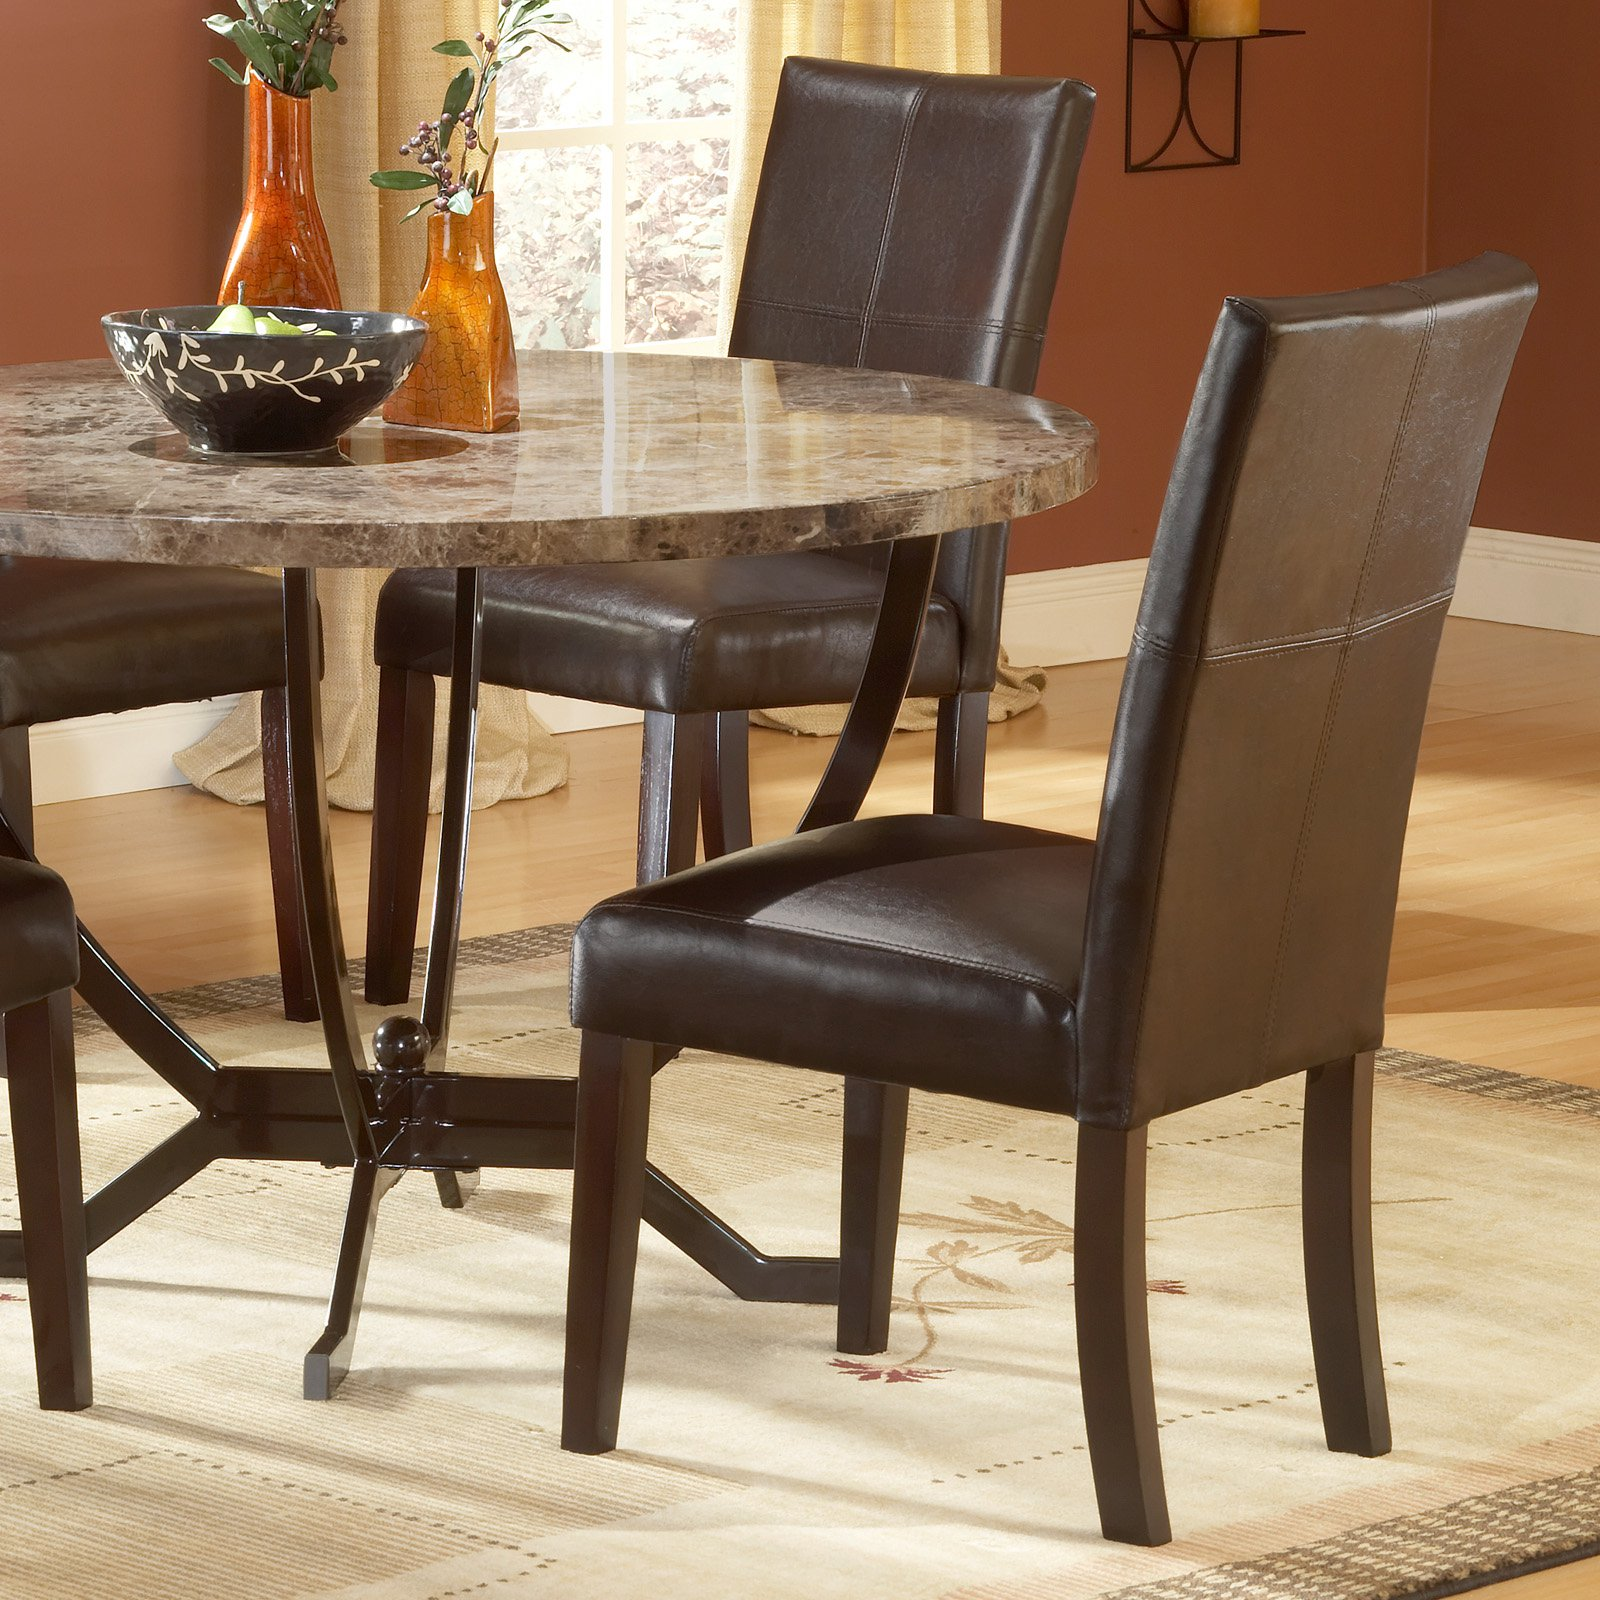 Hillsdale Monaco Parson Dining Chairs - Set of 2, Espresso